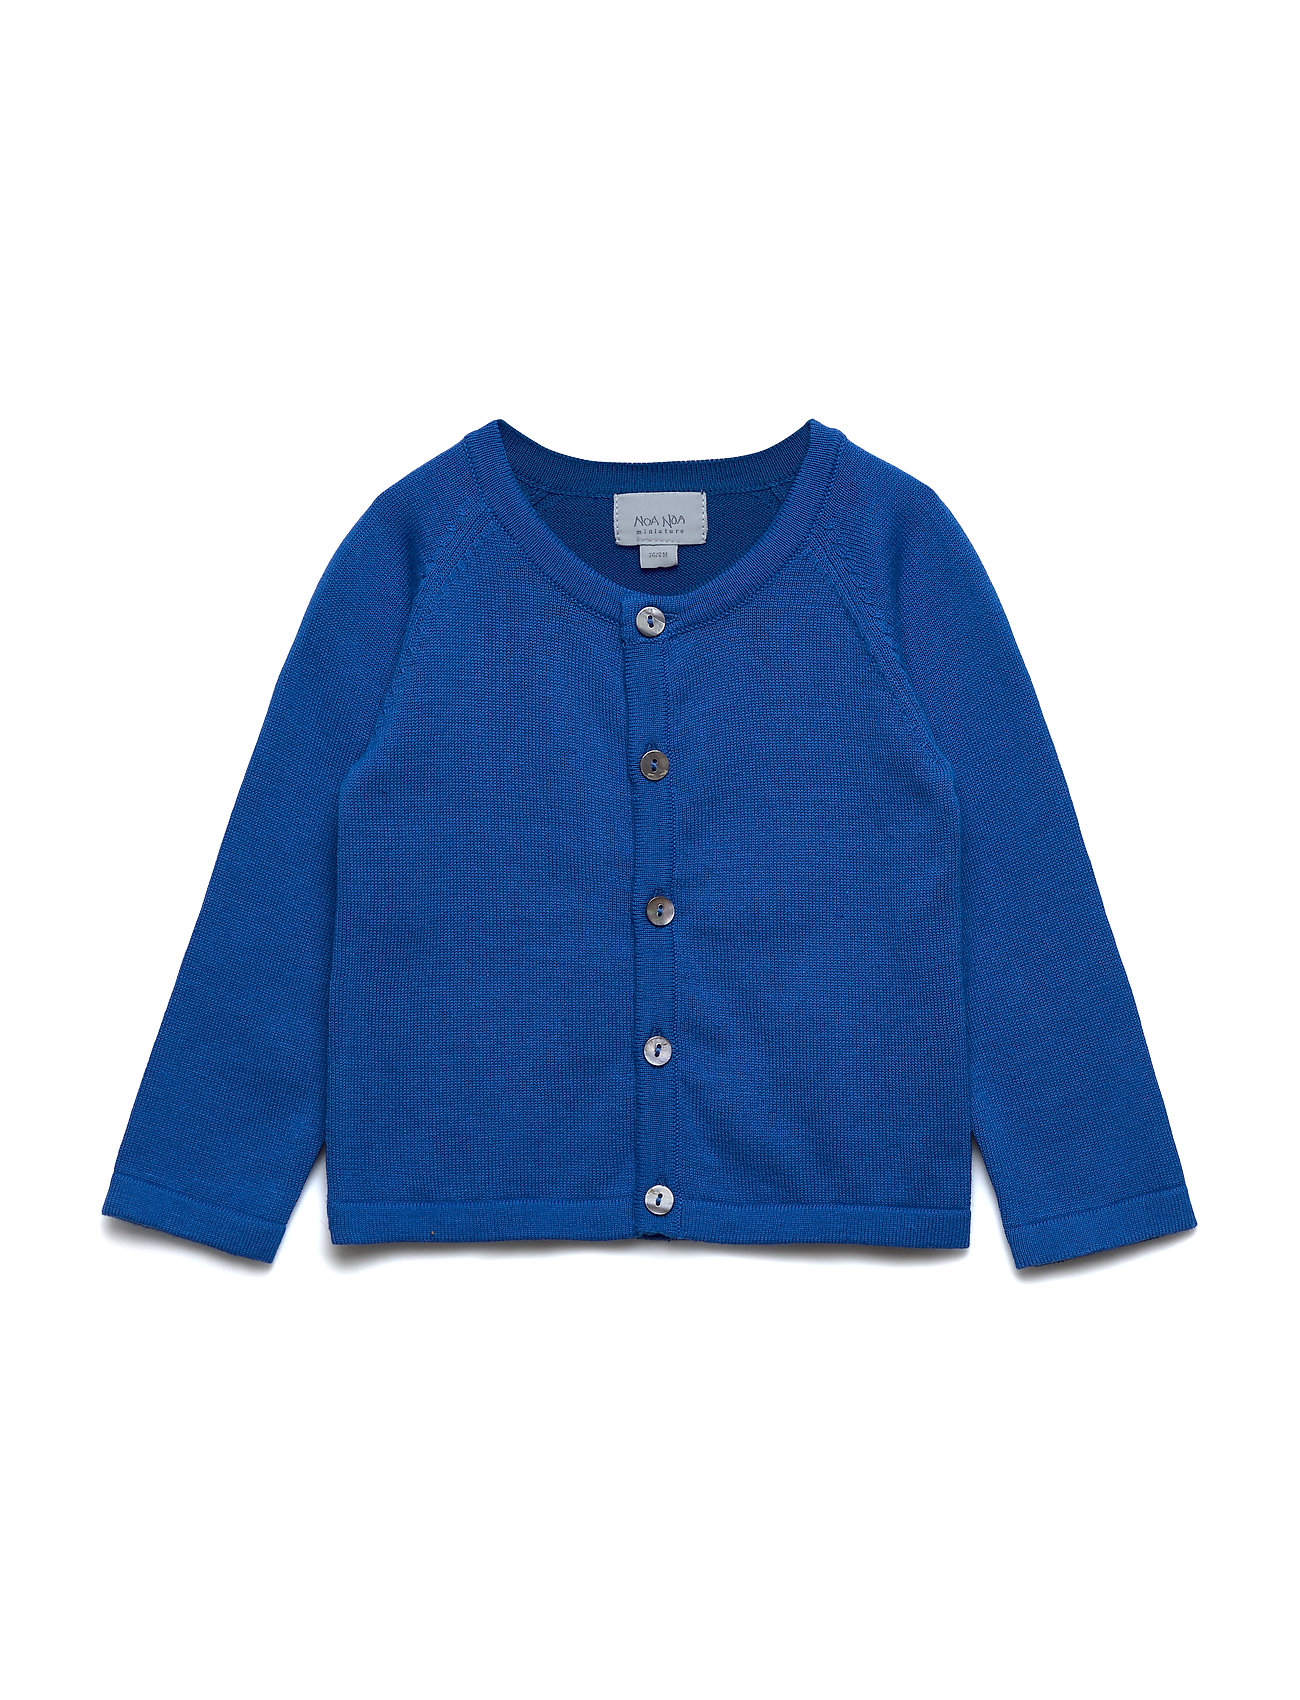 Noa Noa Miniature Cardigan - PRINCESS BLUE